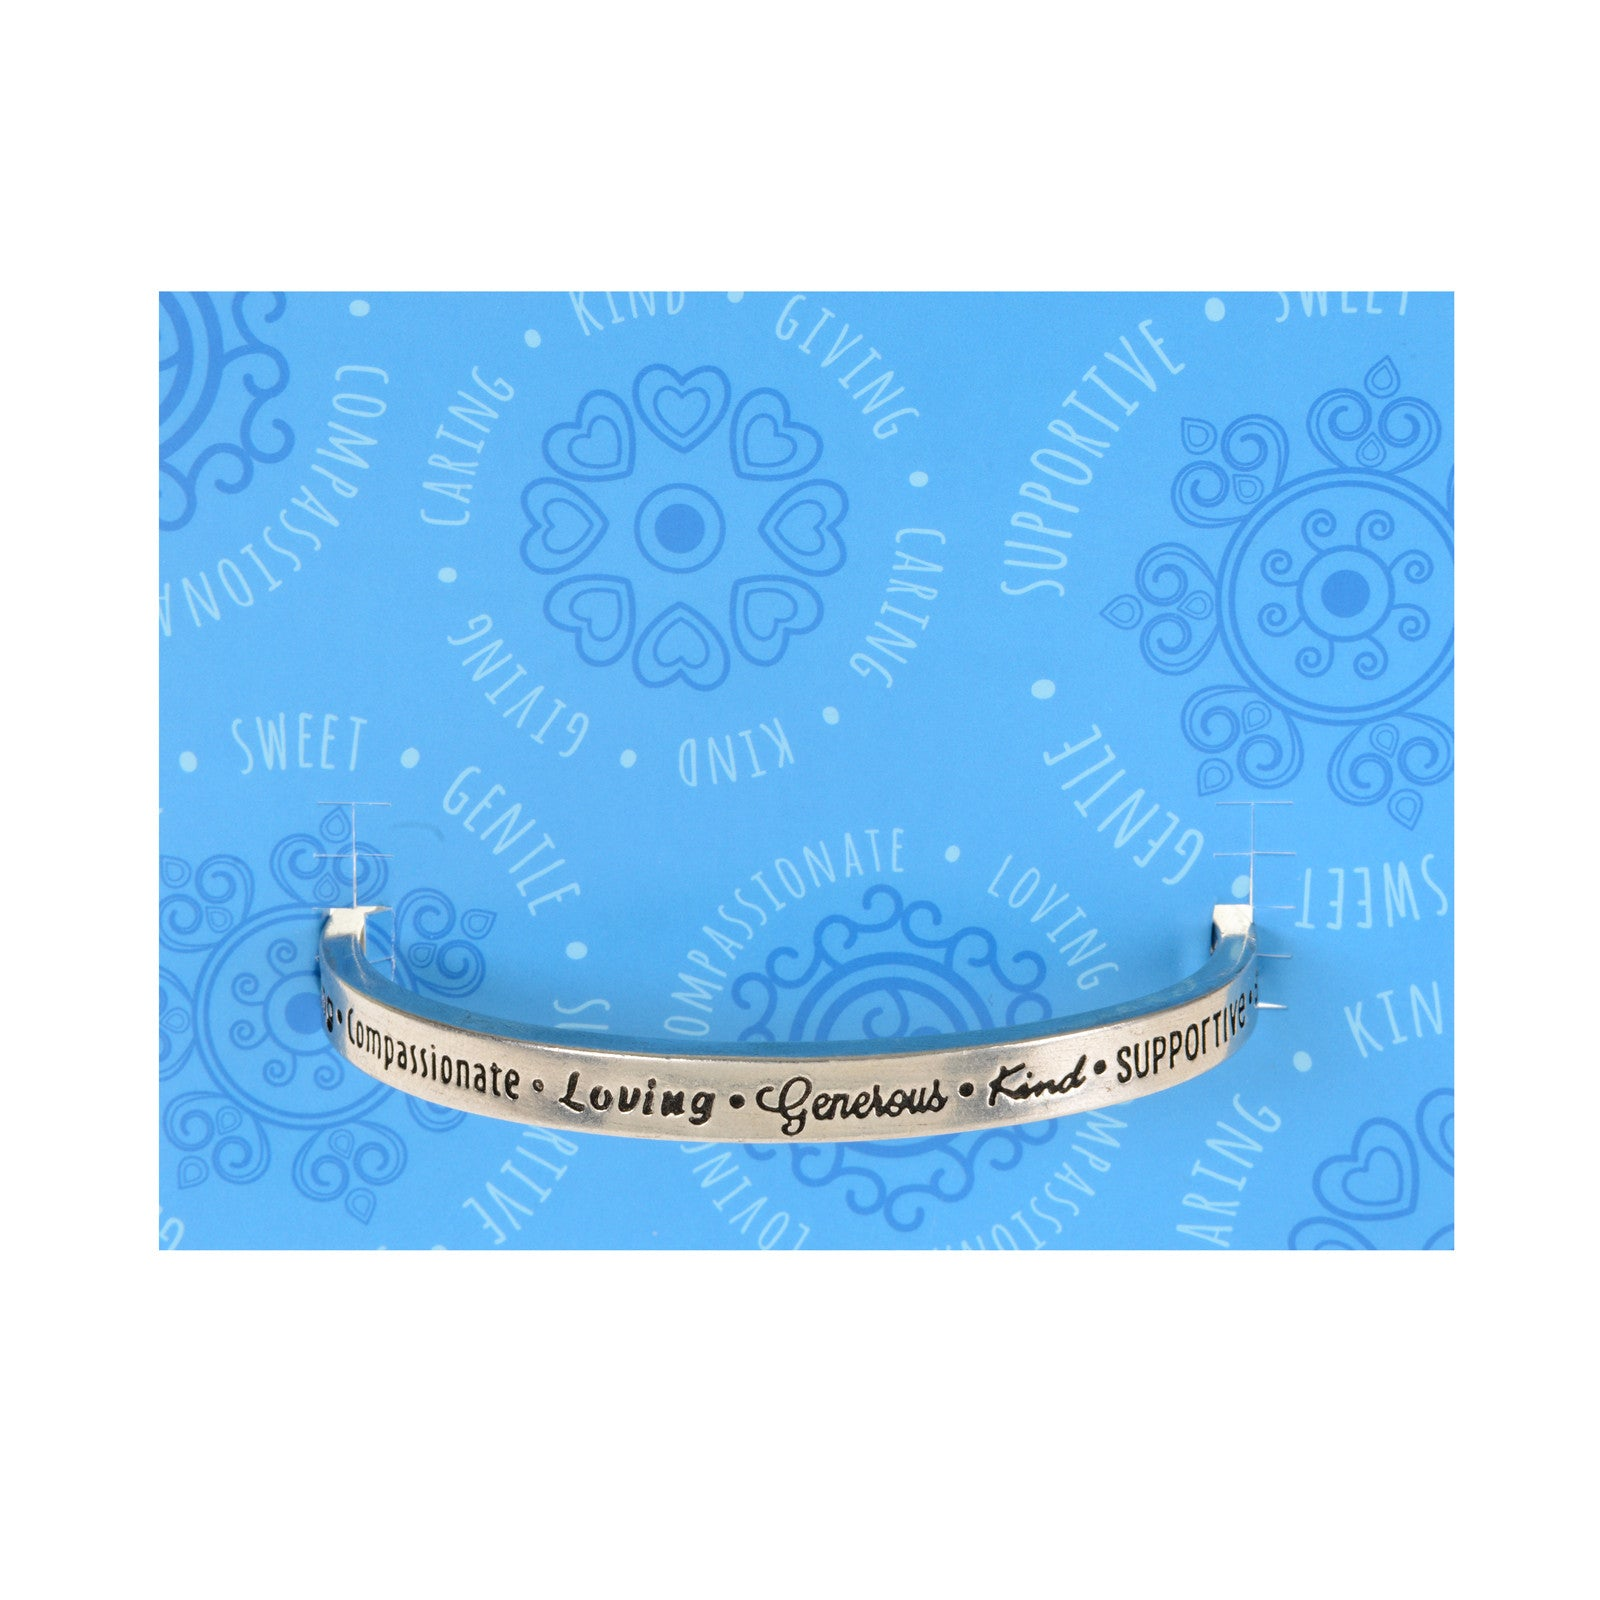 Caring, Compassionate, Loving Quotable Cuff - Whitney Howard Designs